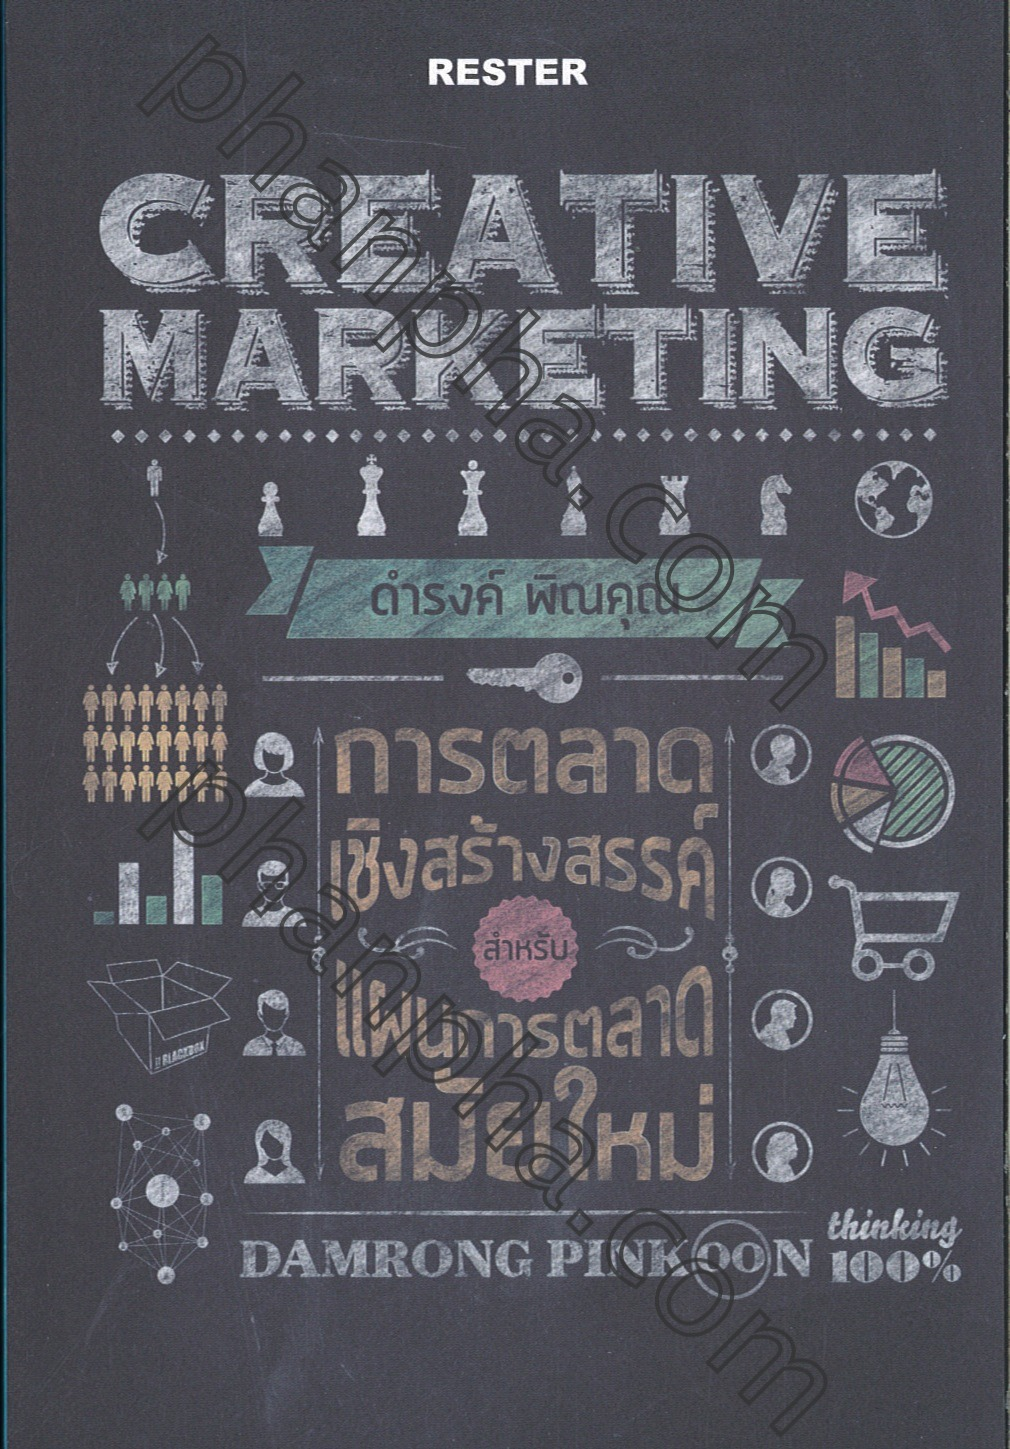 creative product promotion Find and save ideas about creative marketing ideas on pinterest | see more ideas about marketing ideas, entrepreneur and network marketing tips.